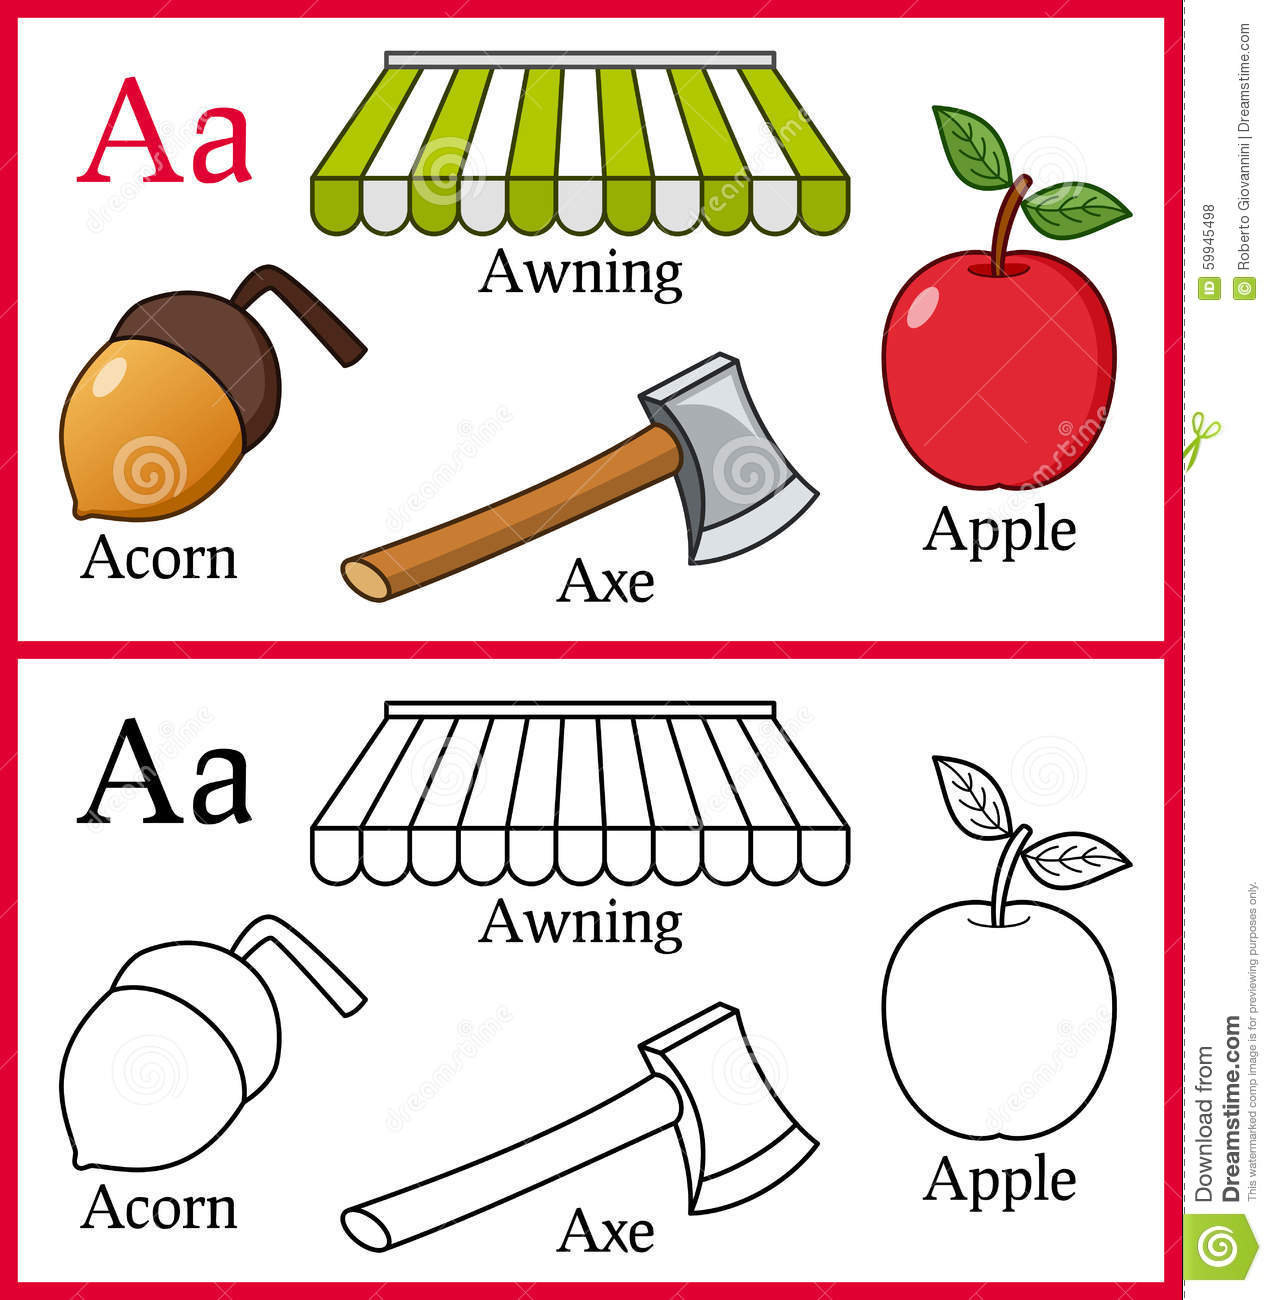 Stock Illustration Coloring Book Children Alphabet Letter Cartoon Objects Acorn Apple Awning Axe Isolated White Background Useful Also Image59945498 on Alphabet Coloring Pages For Preschool